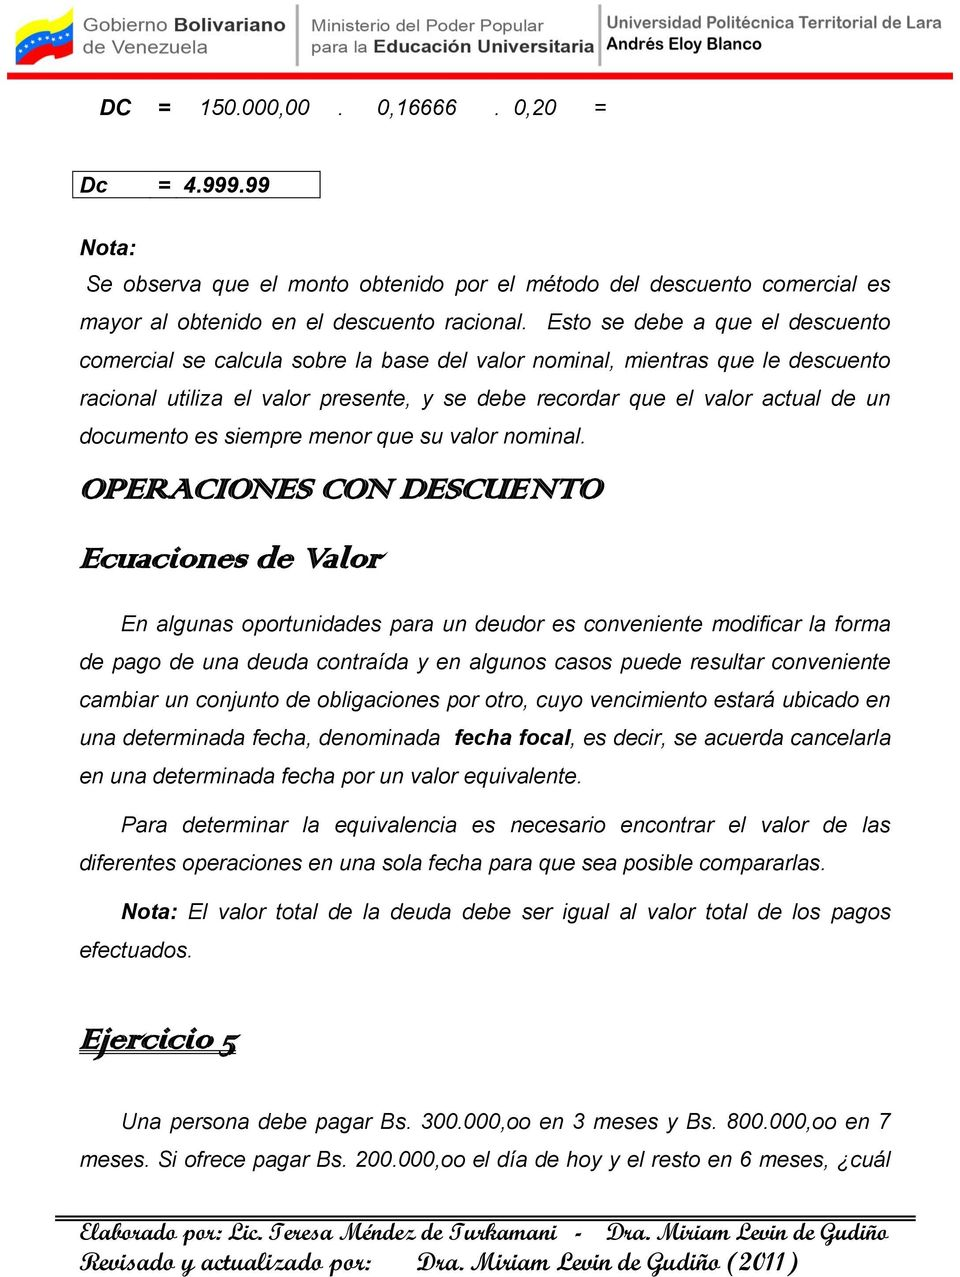 documento es siempre menor que su valor nominal.